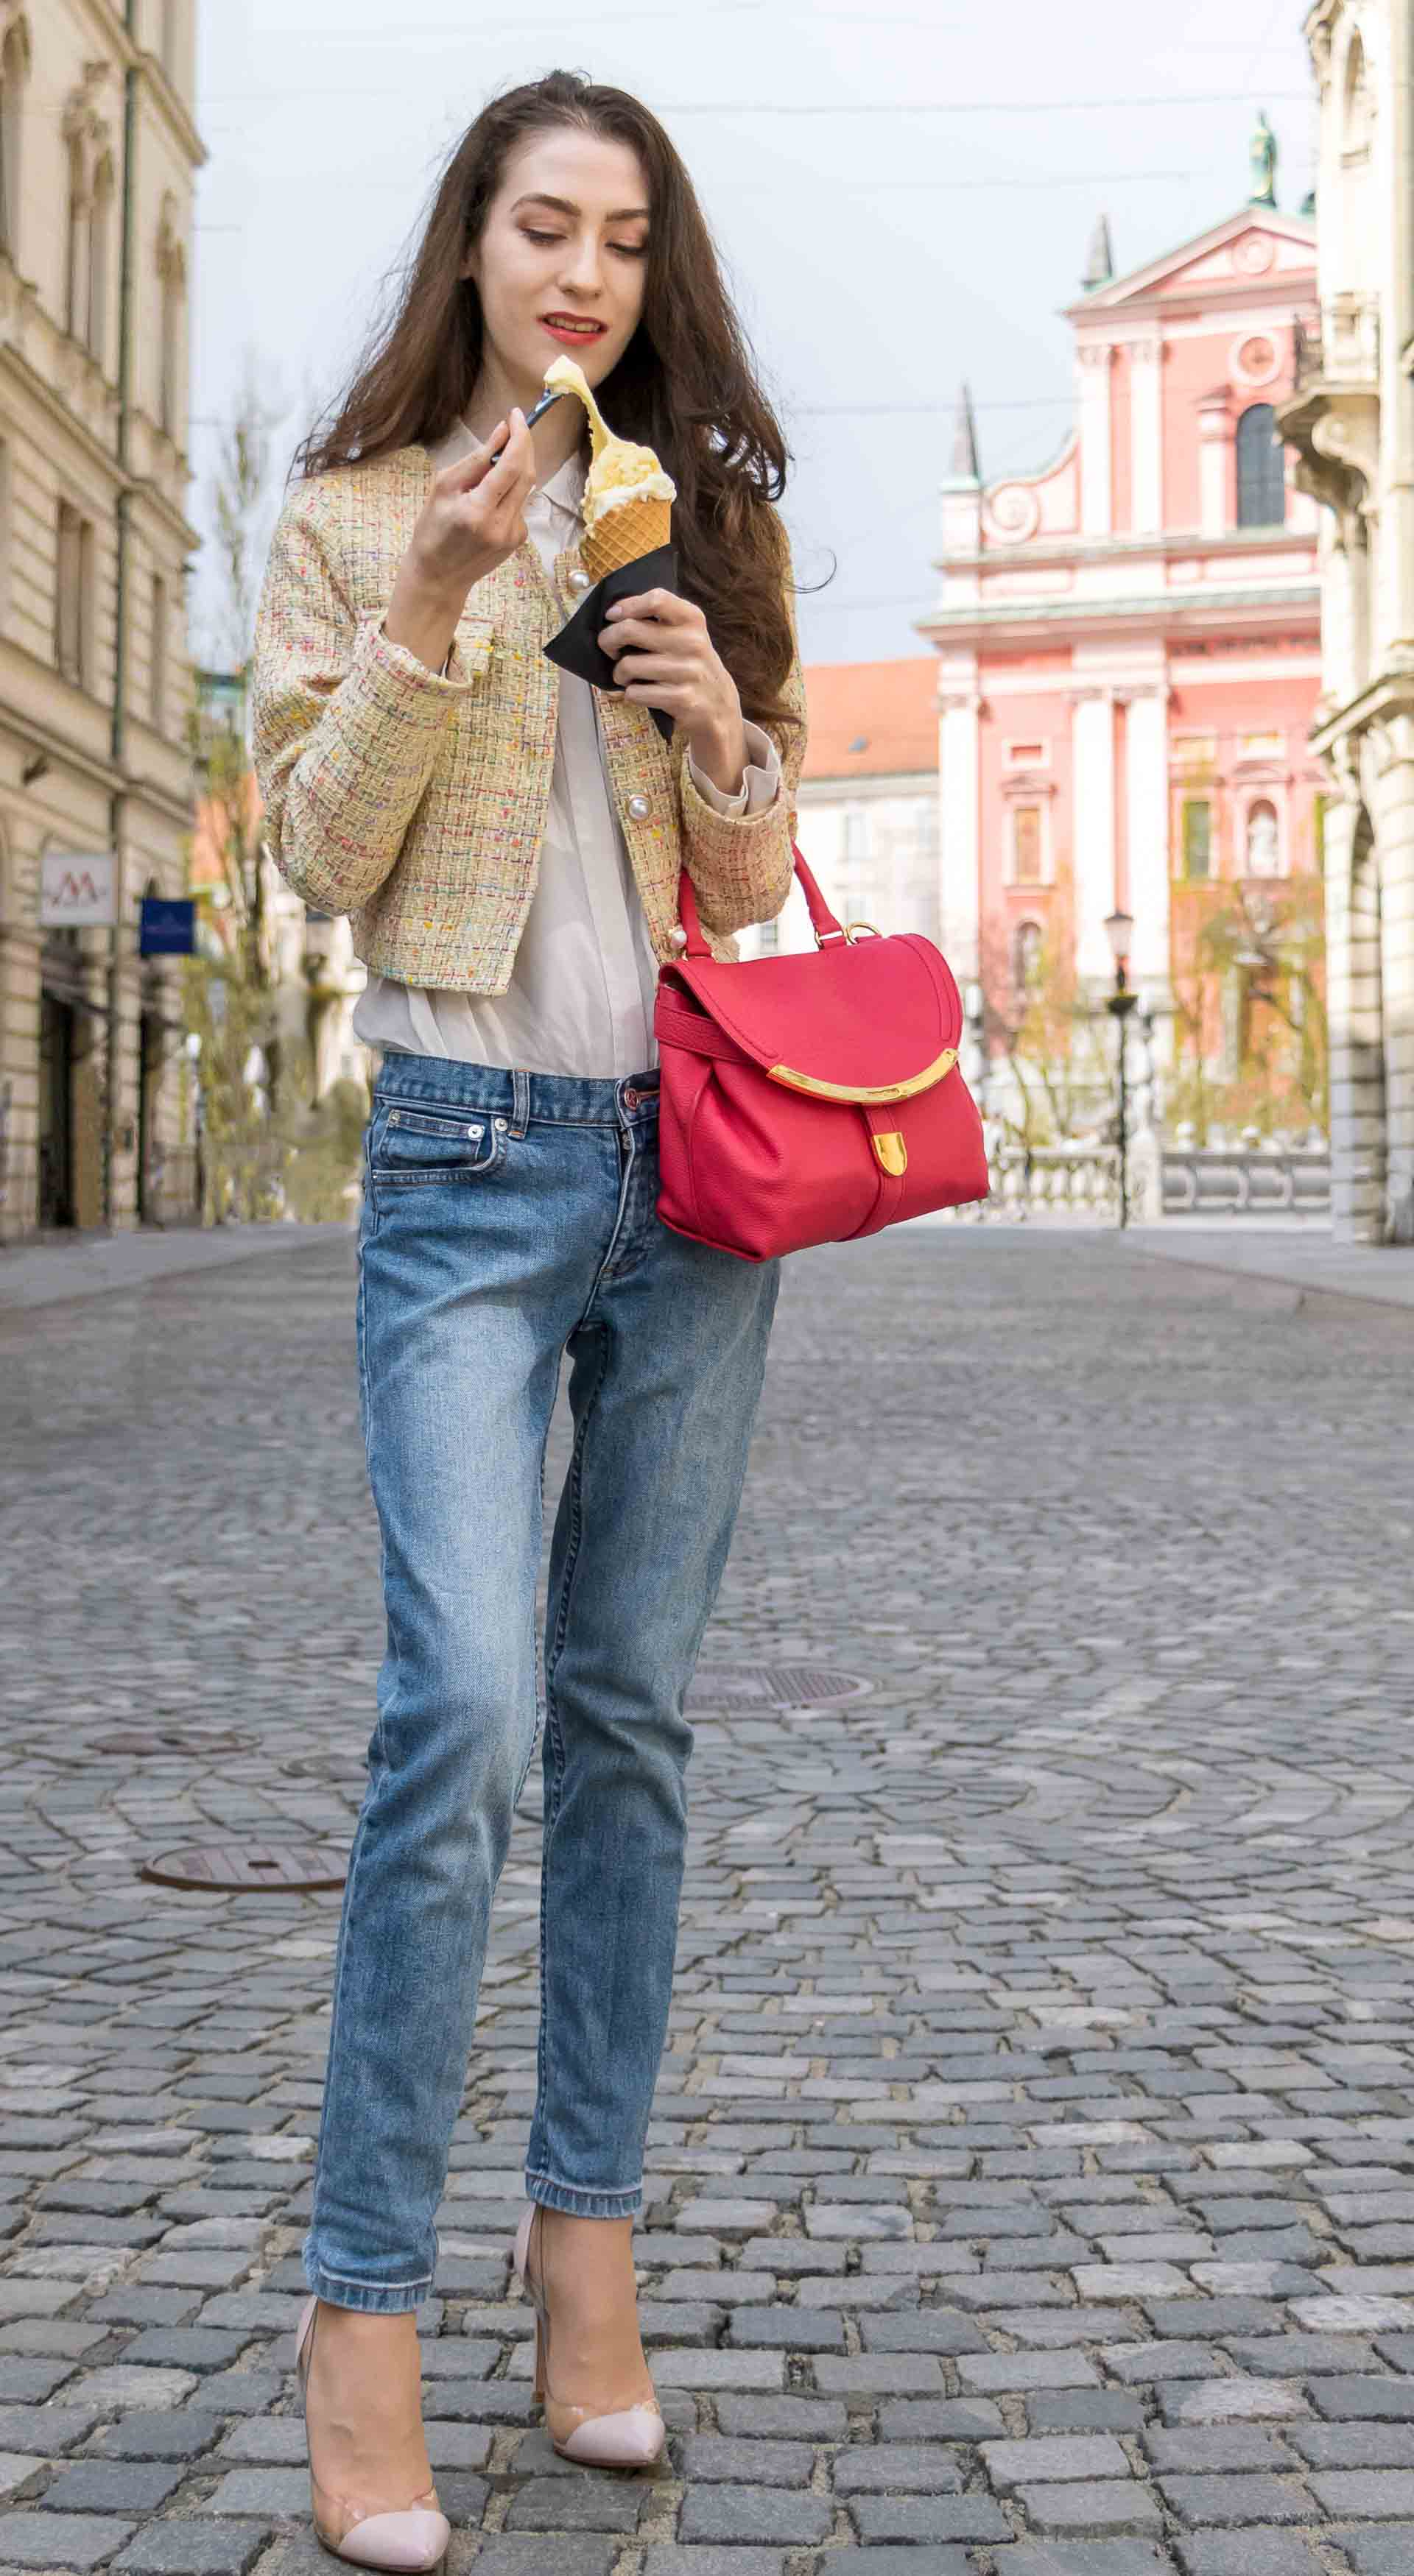 Veronika Lipar Fashion Blogger of Brunette from Wall Street wearing chic casual everyday spring outfit, the yellow tweed jacket from Storets, blue jeans from A.P.C., blush Gianvito Rossi plexi pumps, pink top handle bag and organza for ice cream date